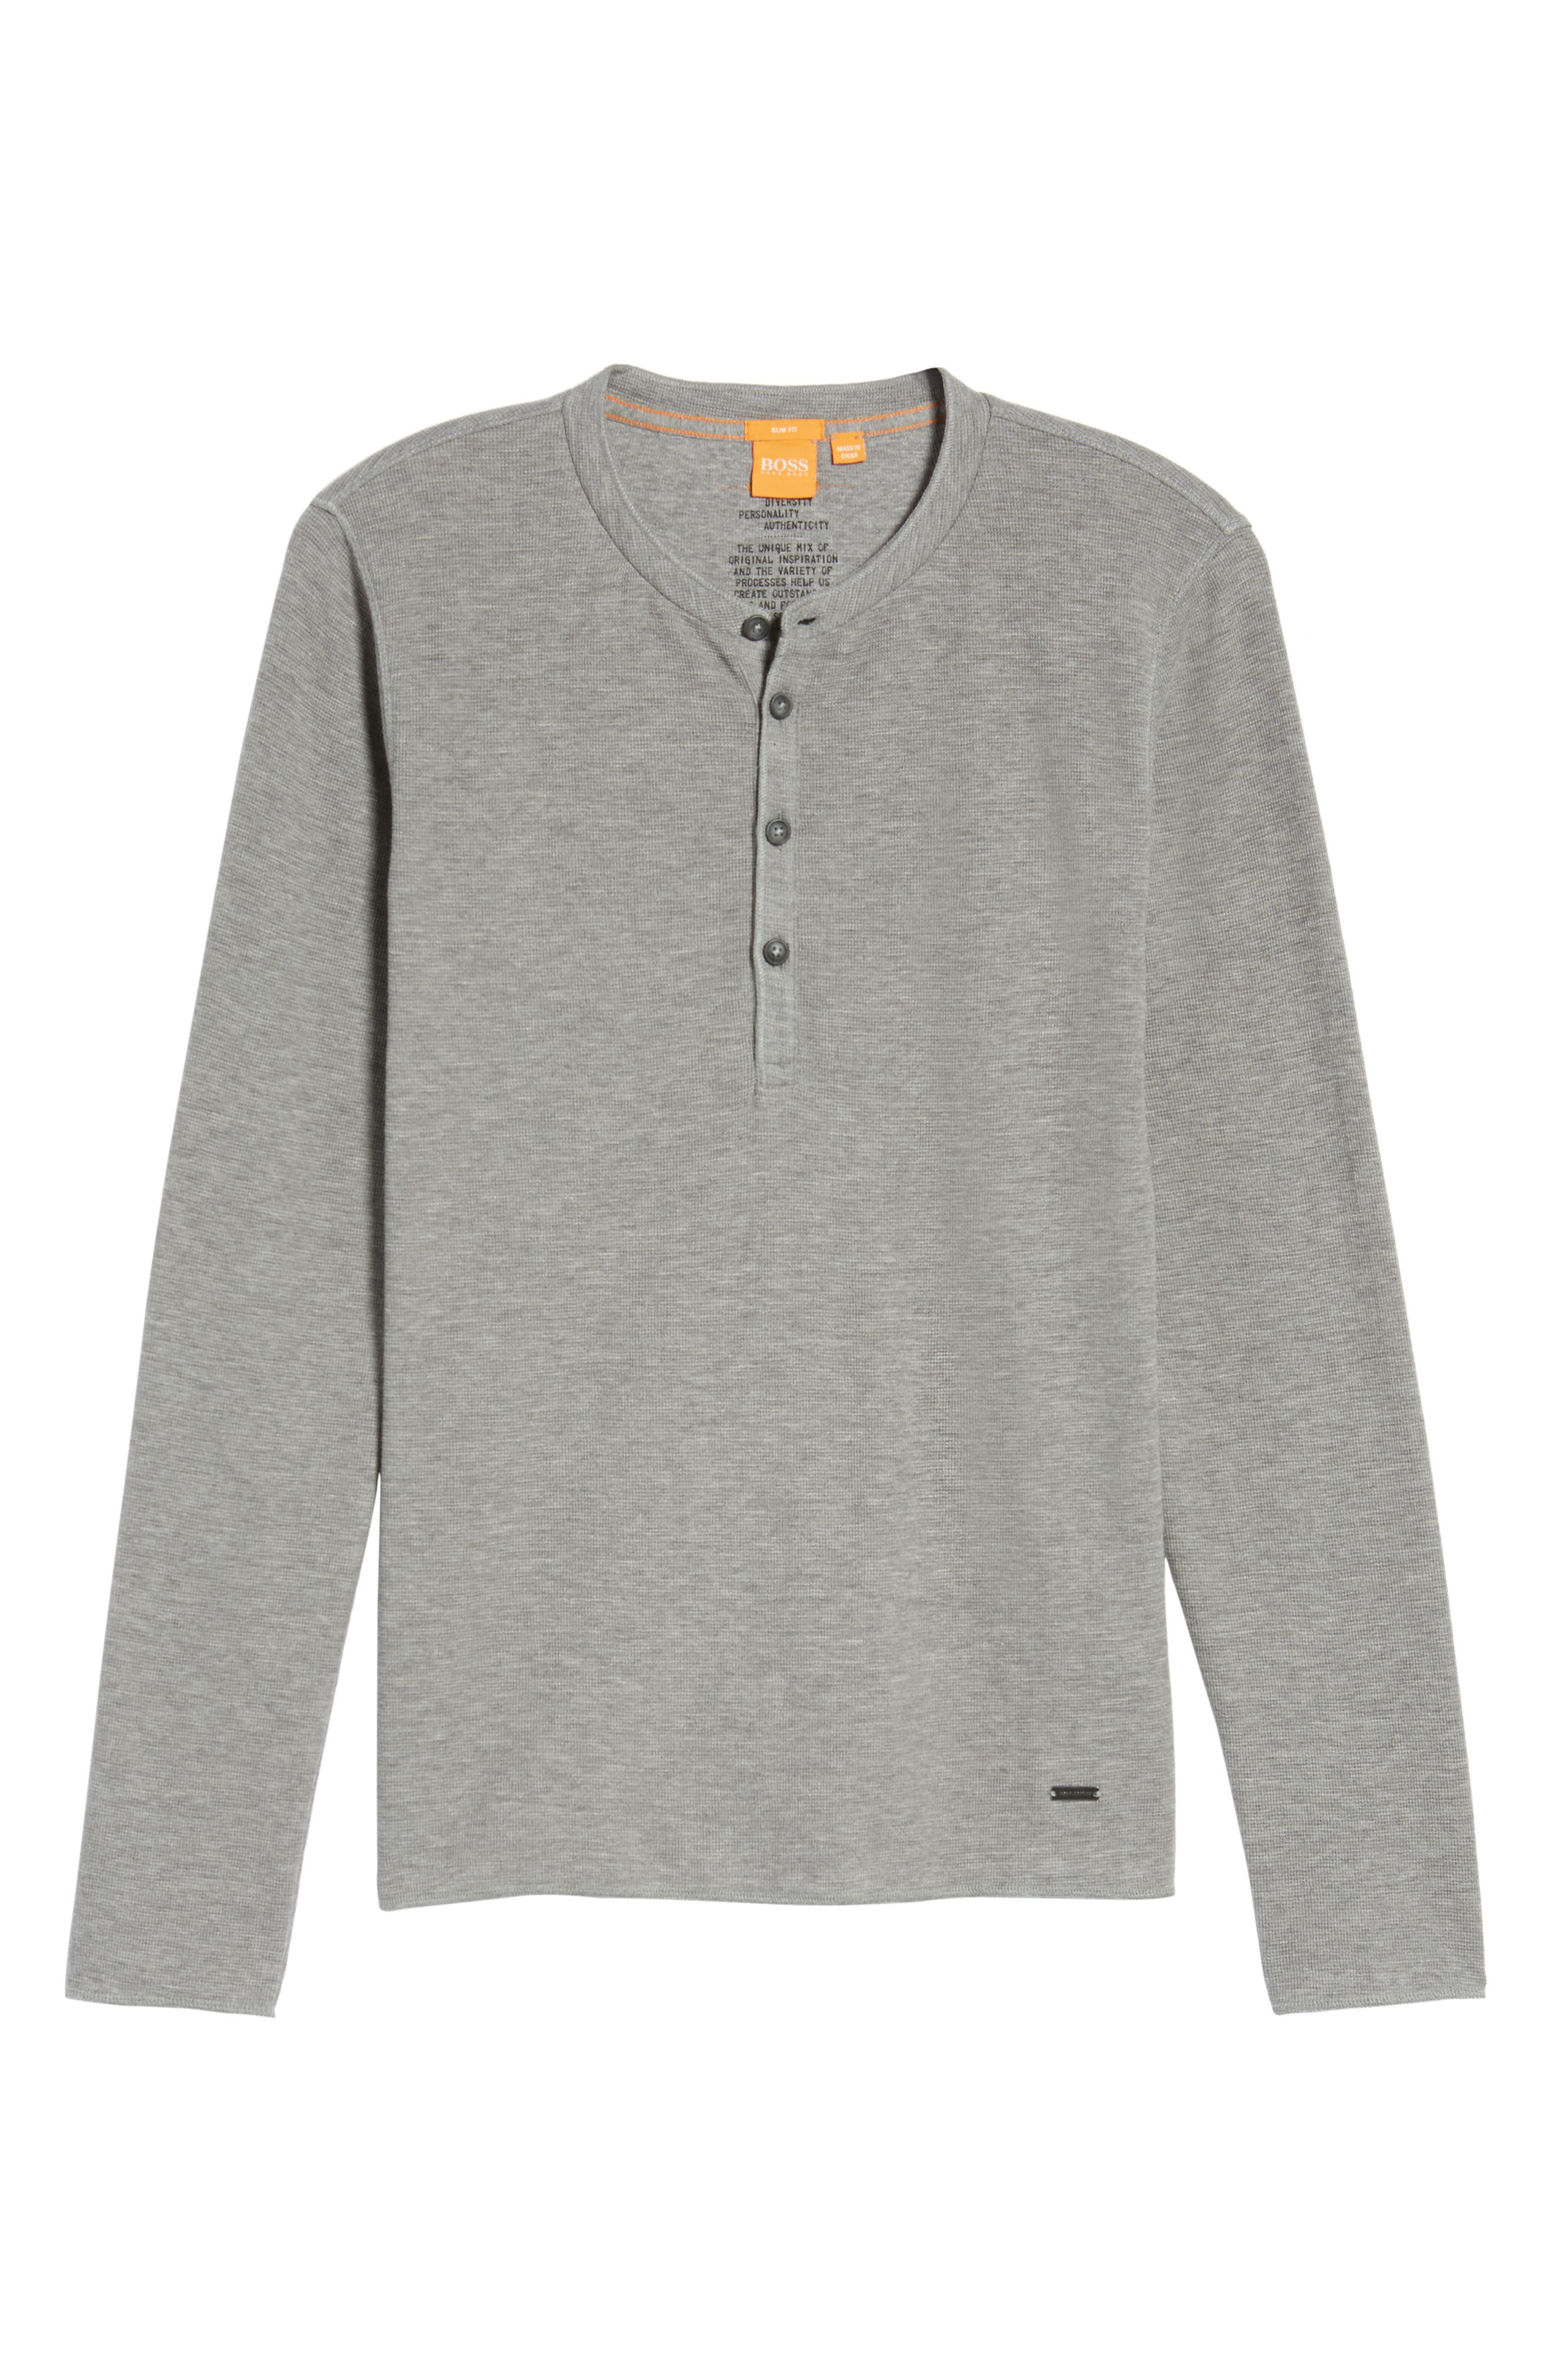 Topsider Thermal Henley,                             Alternate thumbnail 6, color,                             051